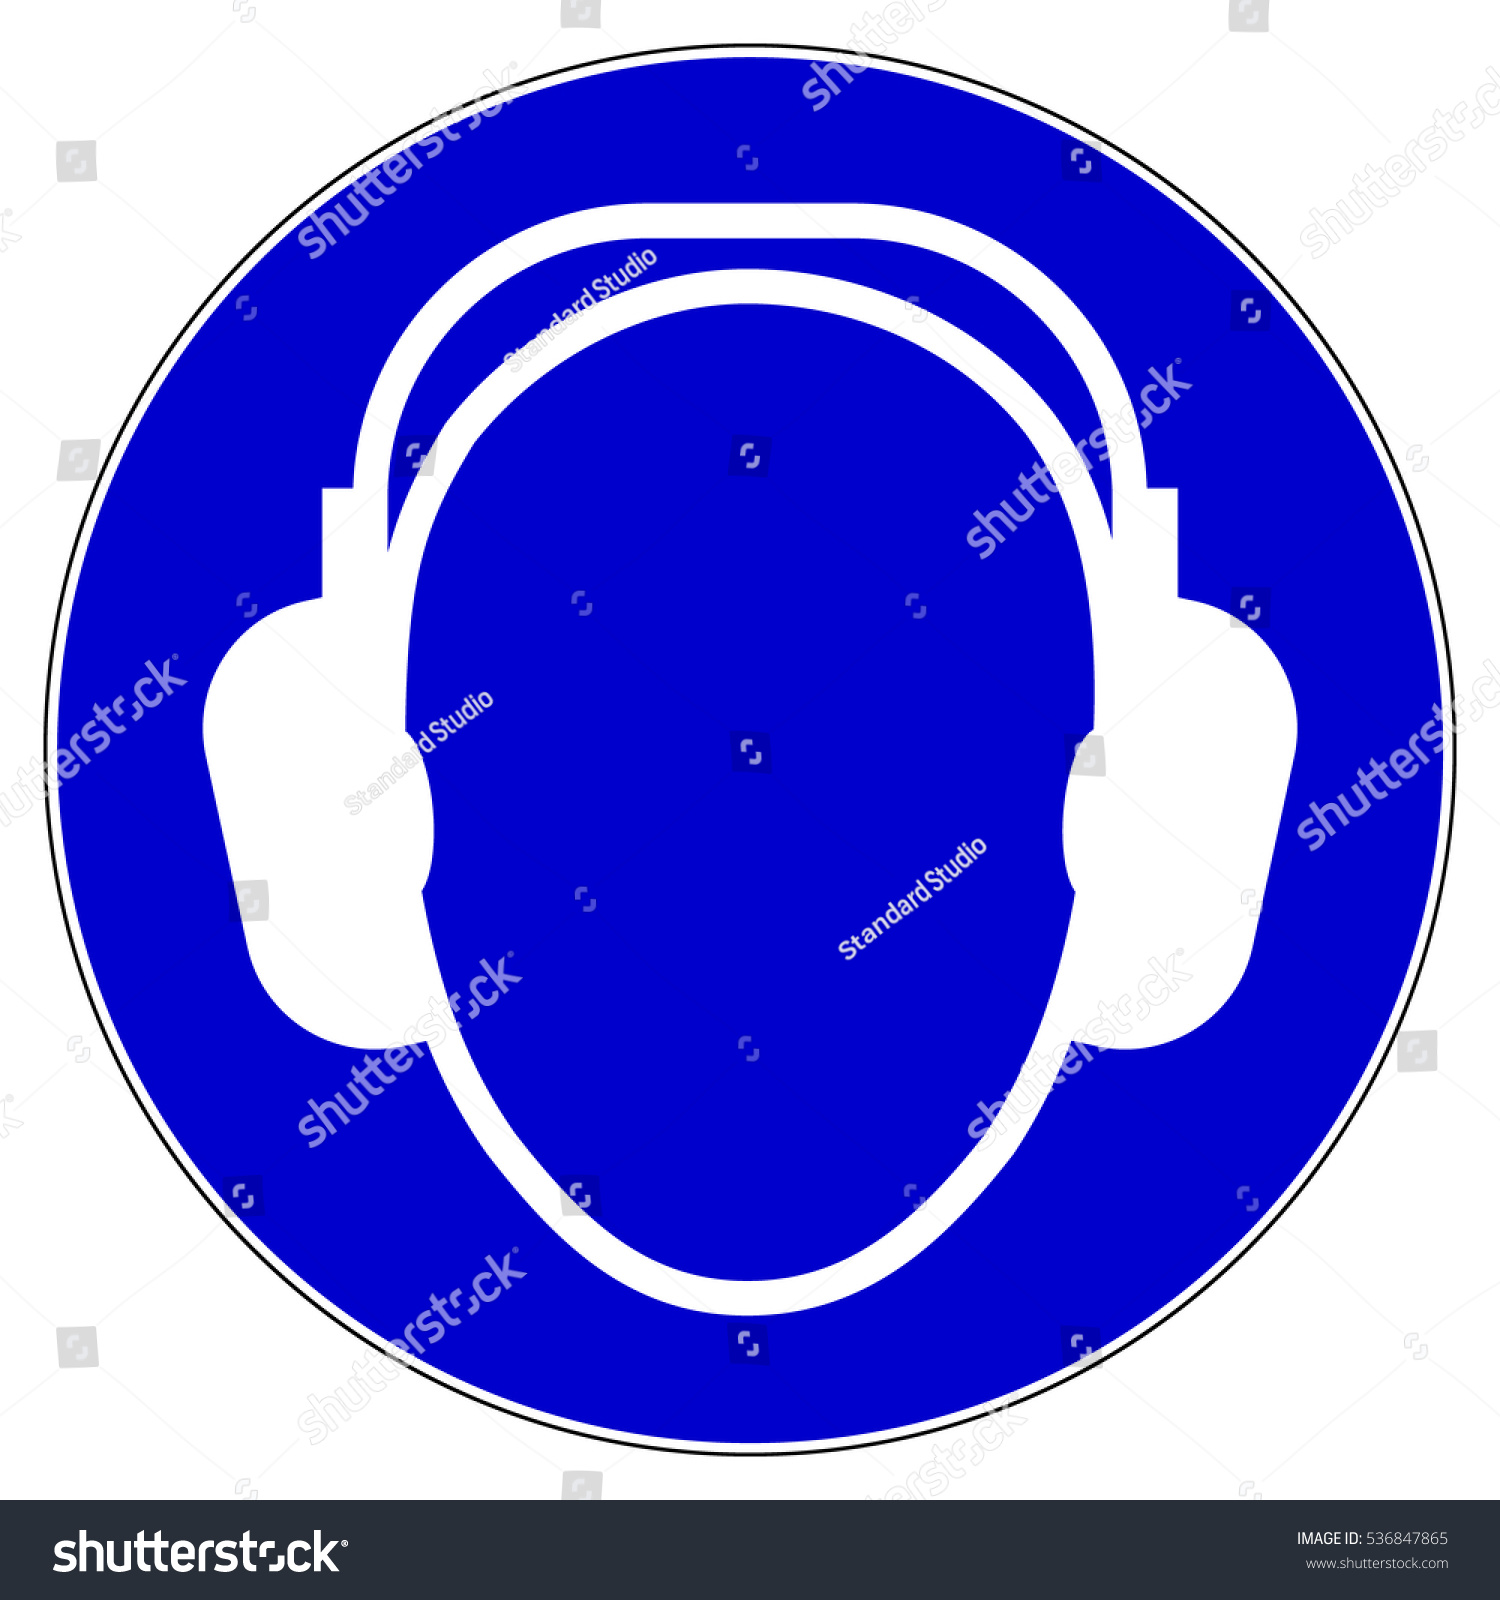 Wear Ear Protection Protective Safety Ear Stock Vector Royalty Free